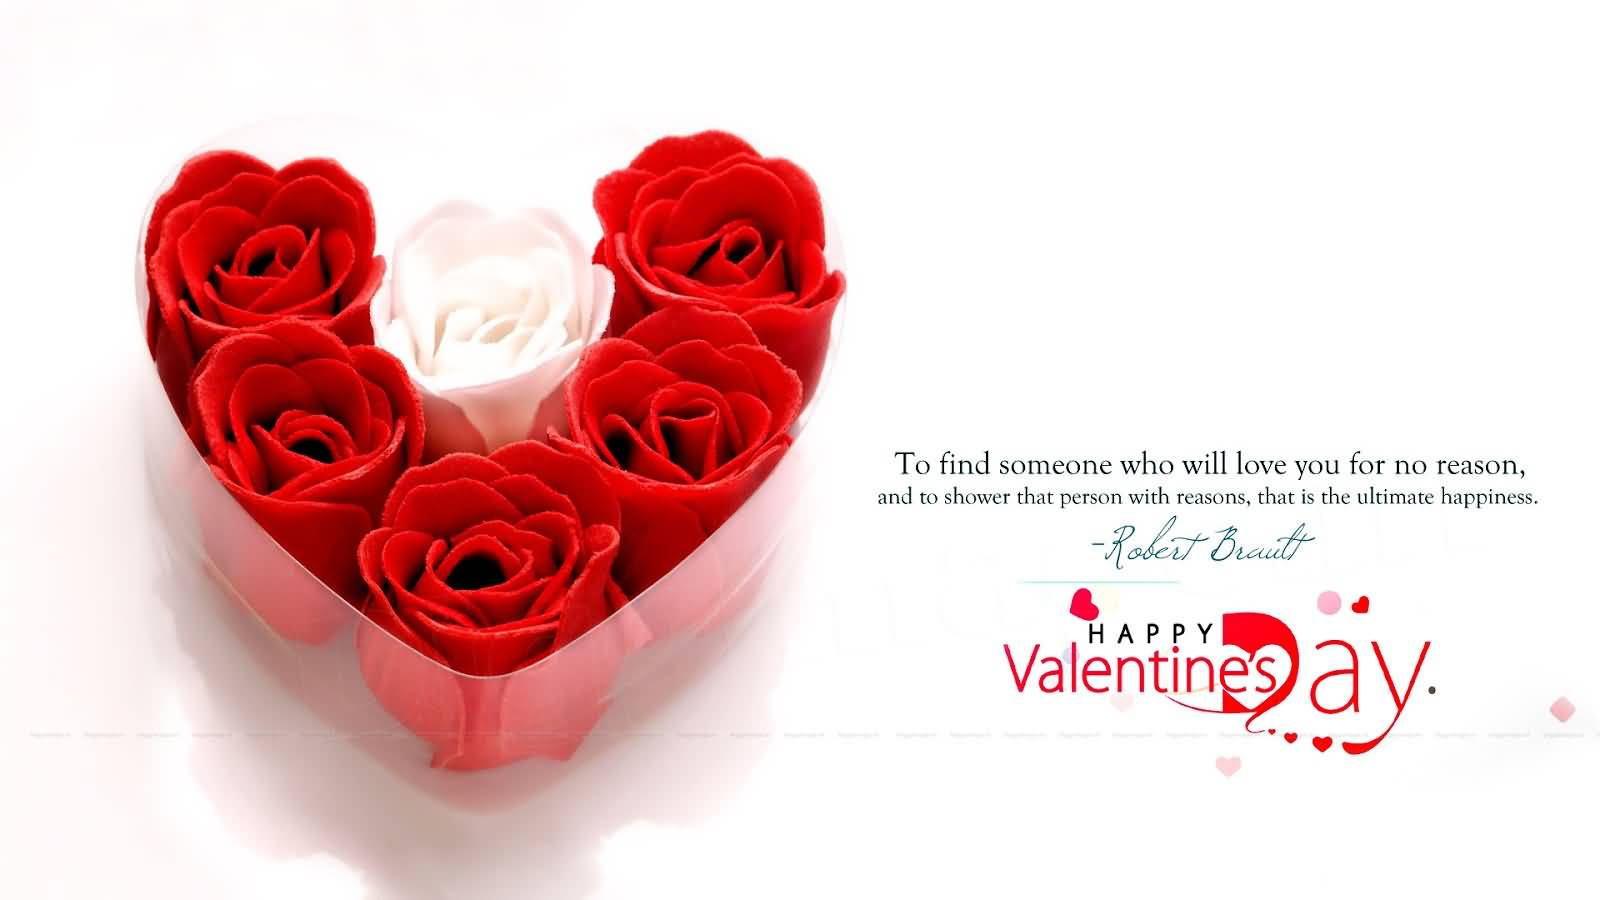 Free Download Valentines Day Quotes Meme Image 09